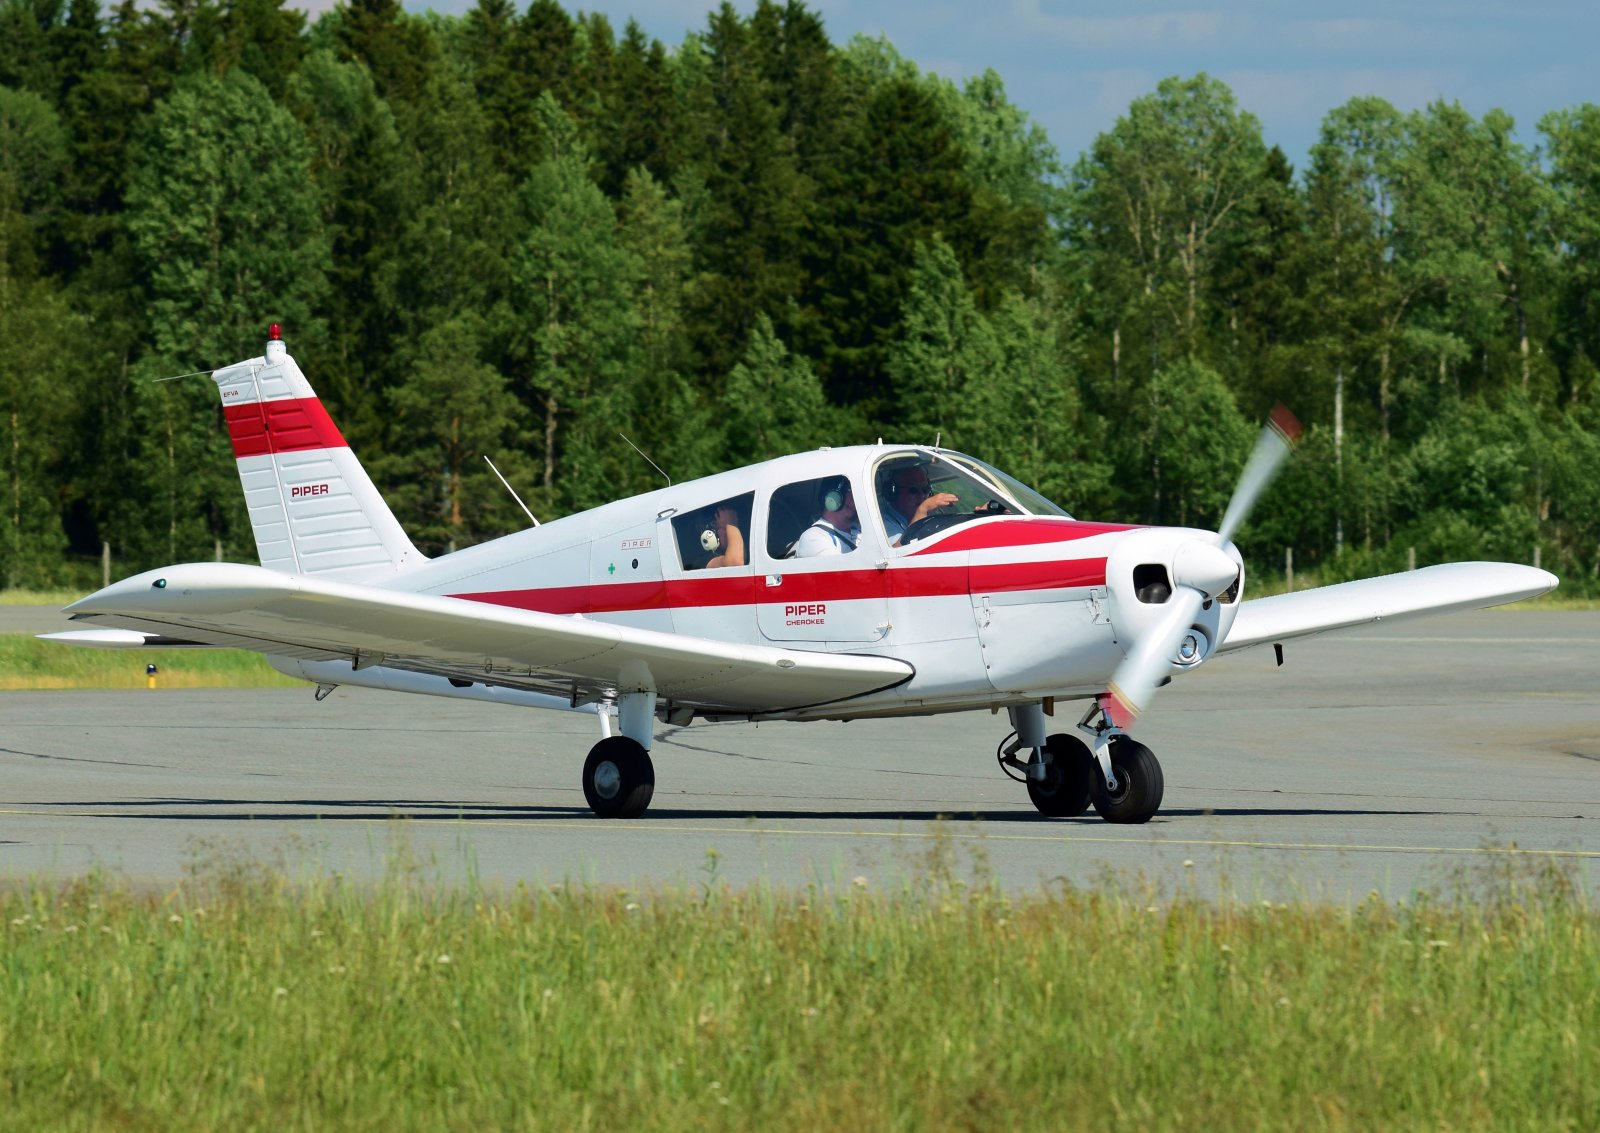 OH-PCL - Piper PA-28-140 Cherokee - 26.6.2020